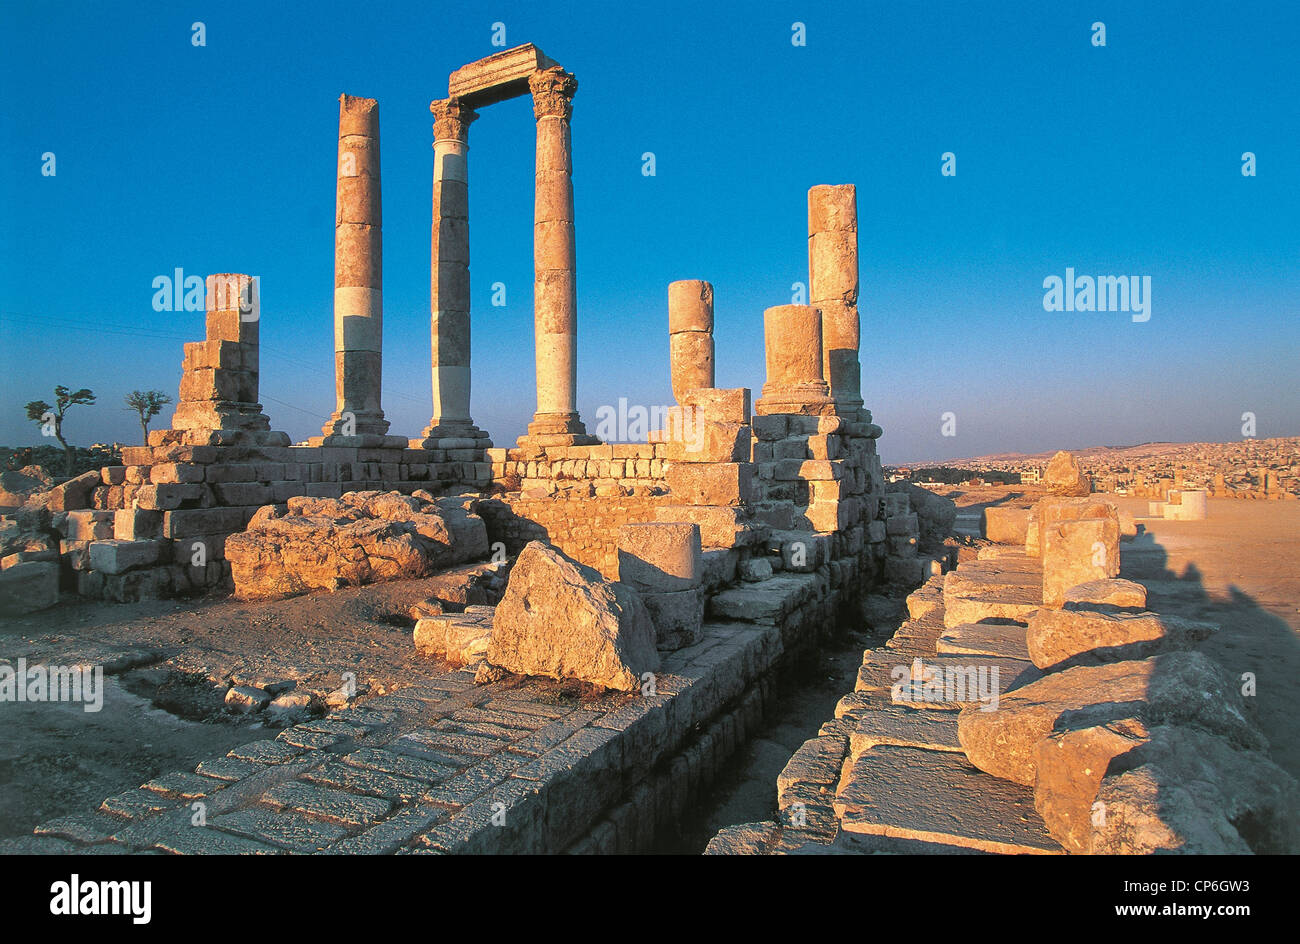 Jordan - Amman. The Citadel, the ruins of the temple of Jupiter, the second century. - Stock Image